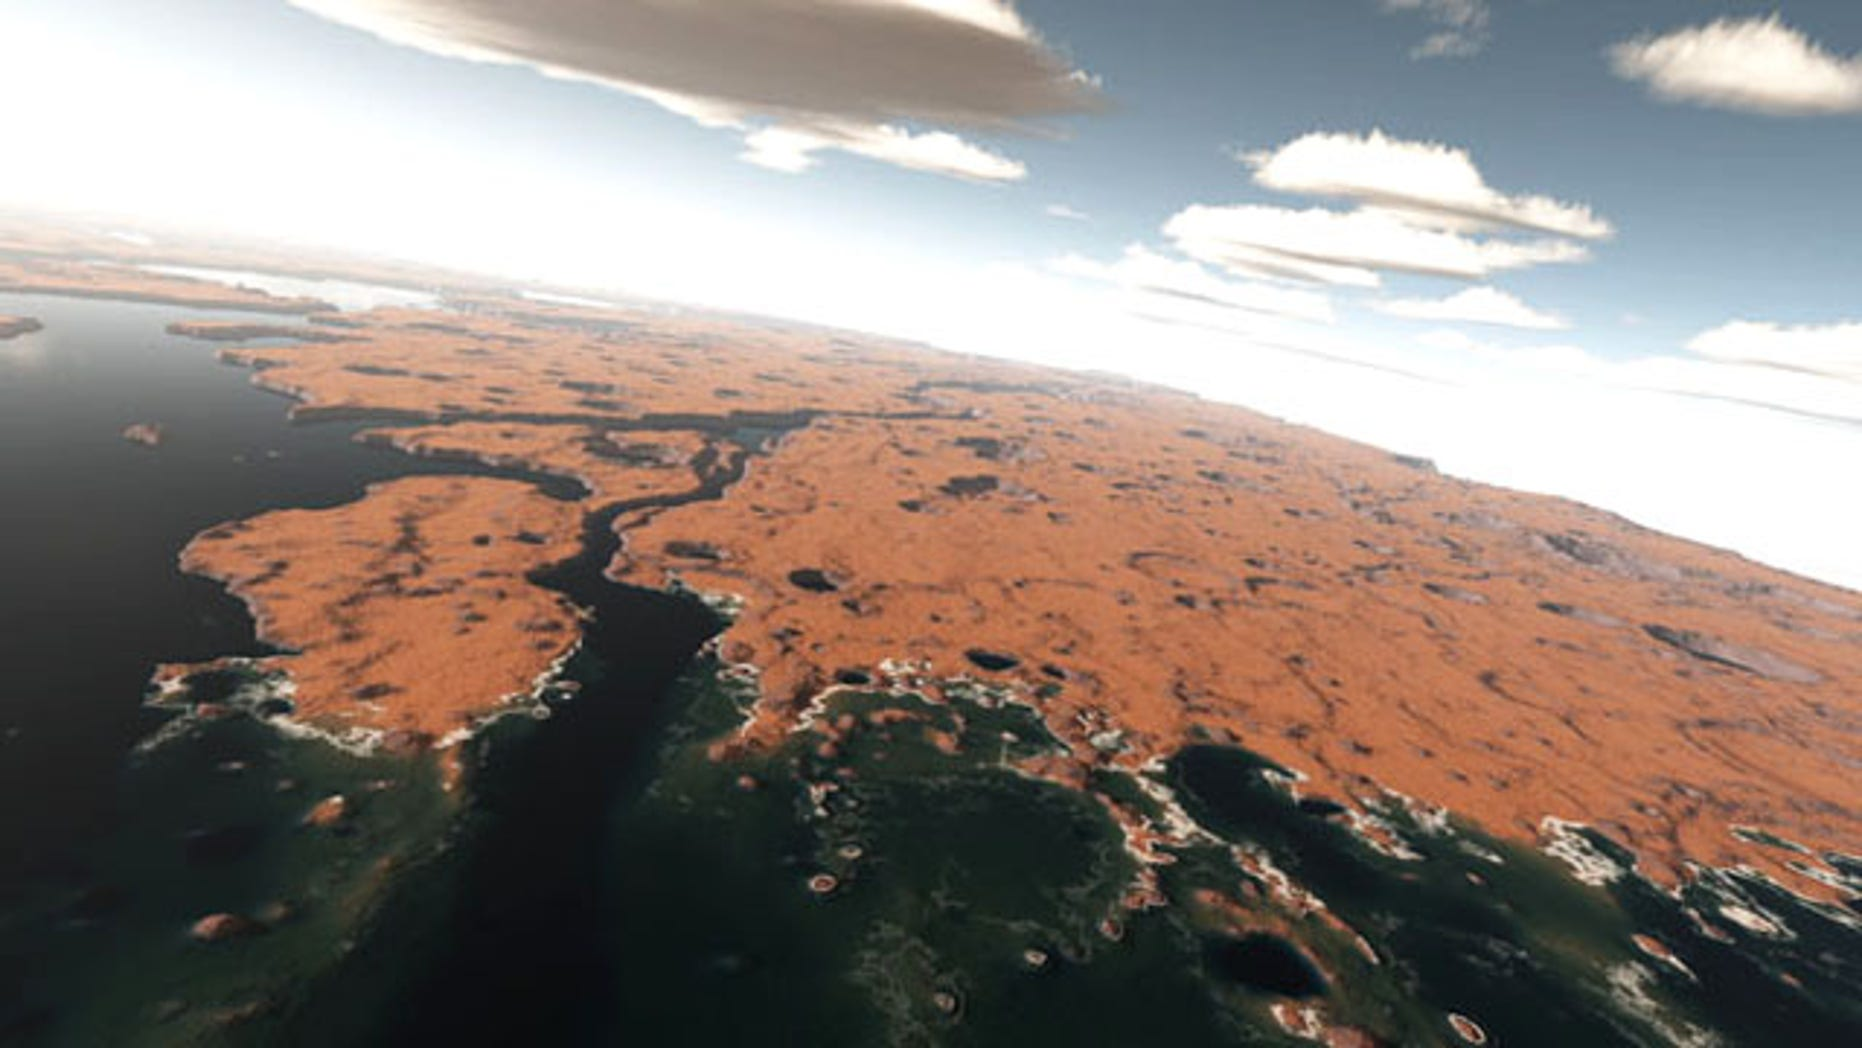 Mars may have been covered with a vast ocean about 3 billion years ago, as shown in this artist's rendition based on actual topography of Mars from NASA Mars Orbiter Laser Altimeter.